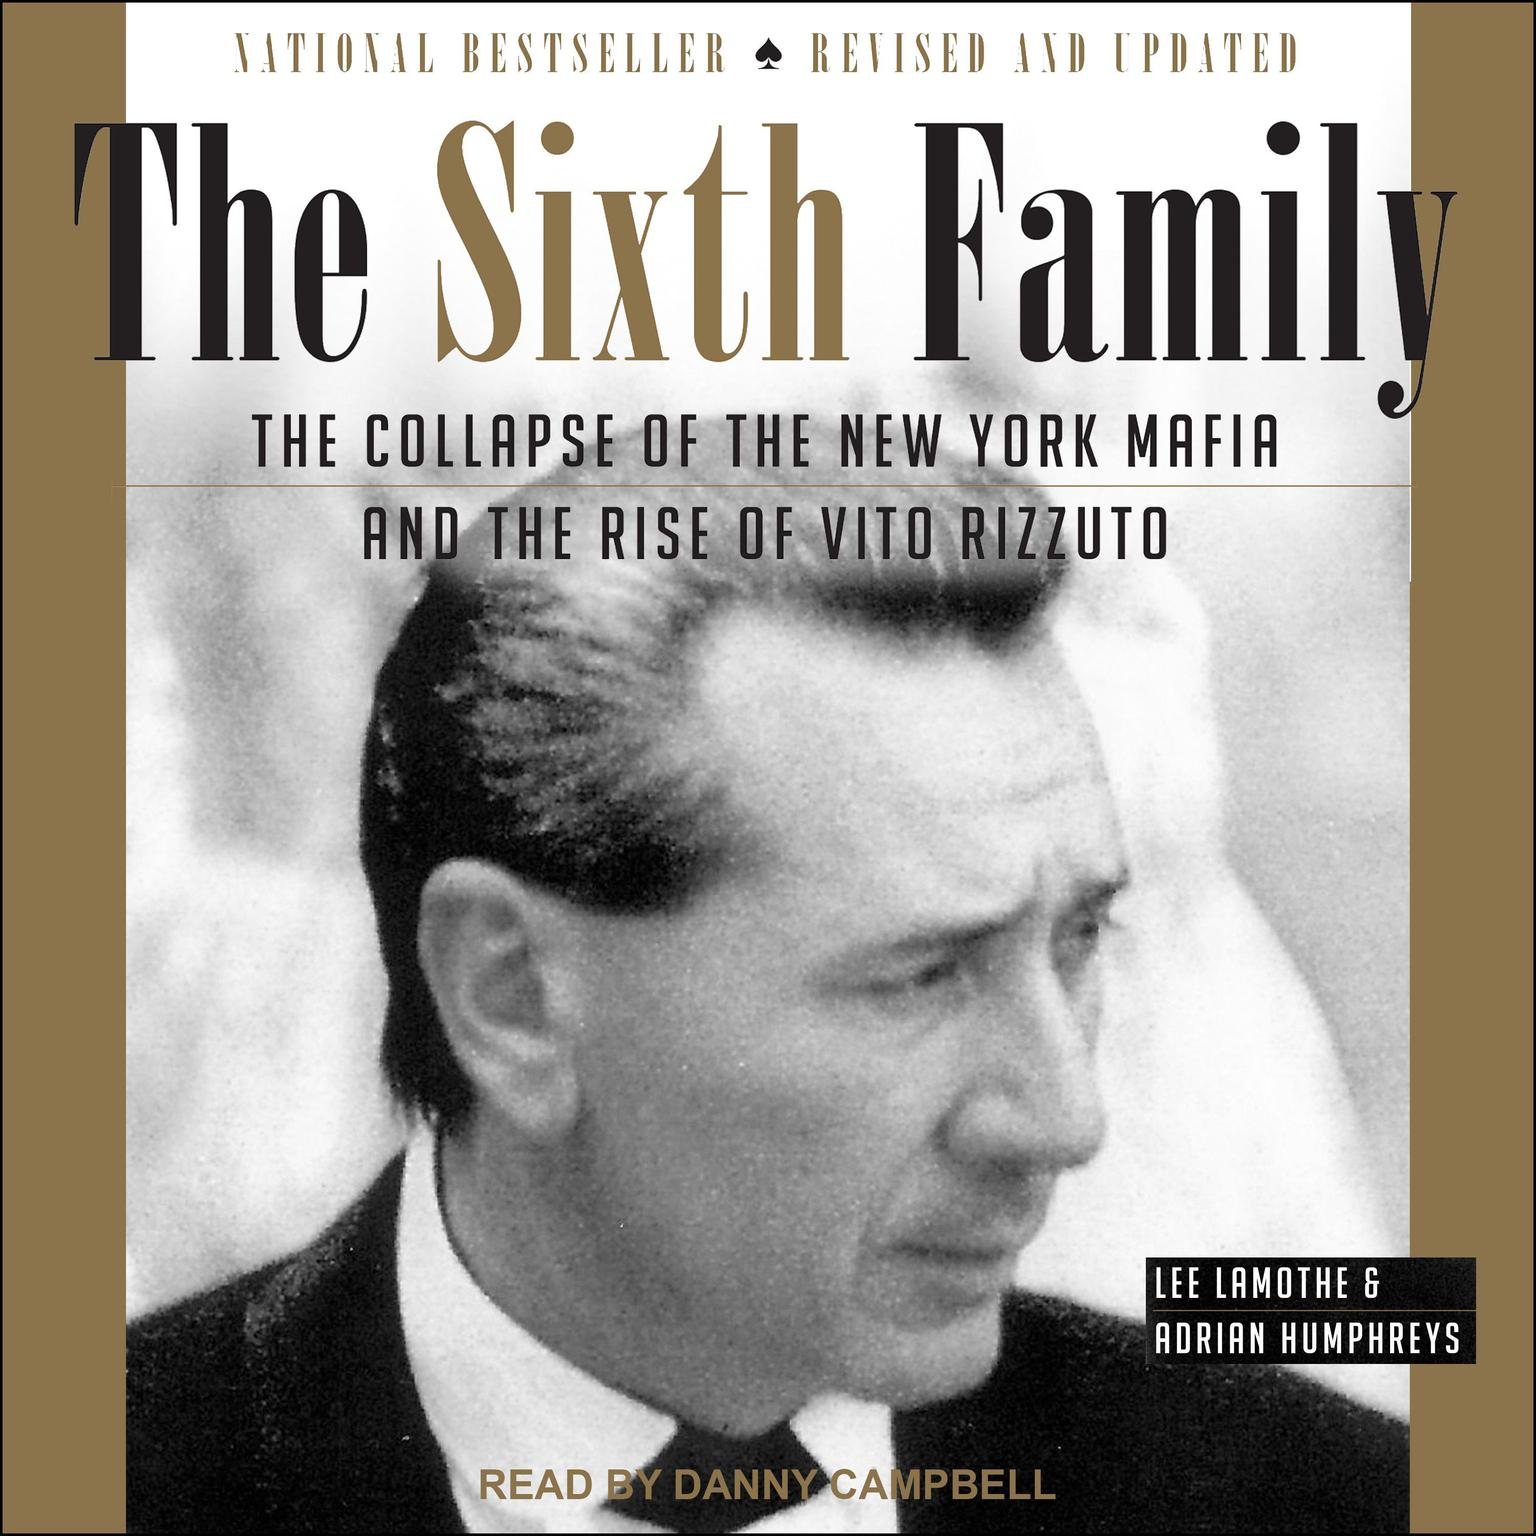 Printable The Sixth Family: The Collapse of The New York Mafia and The Rise of Vito Rizzuto Audiobook Cover Art